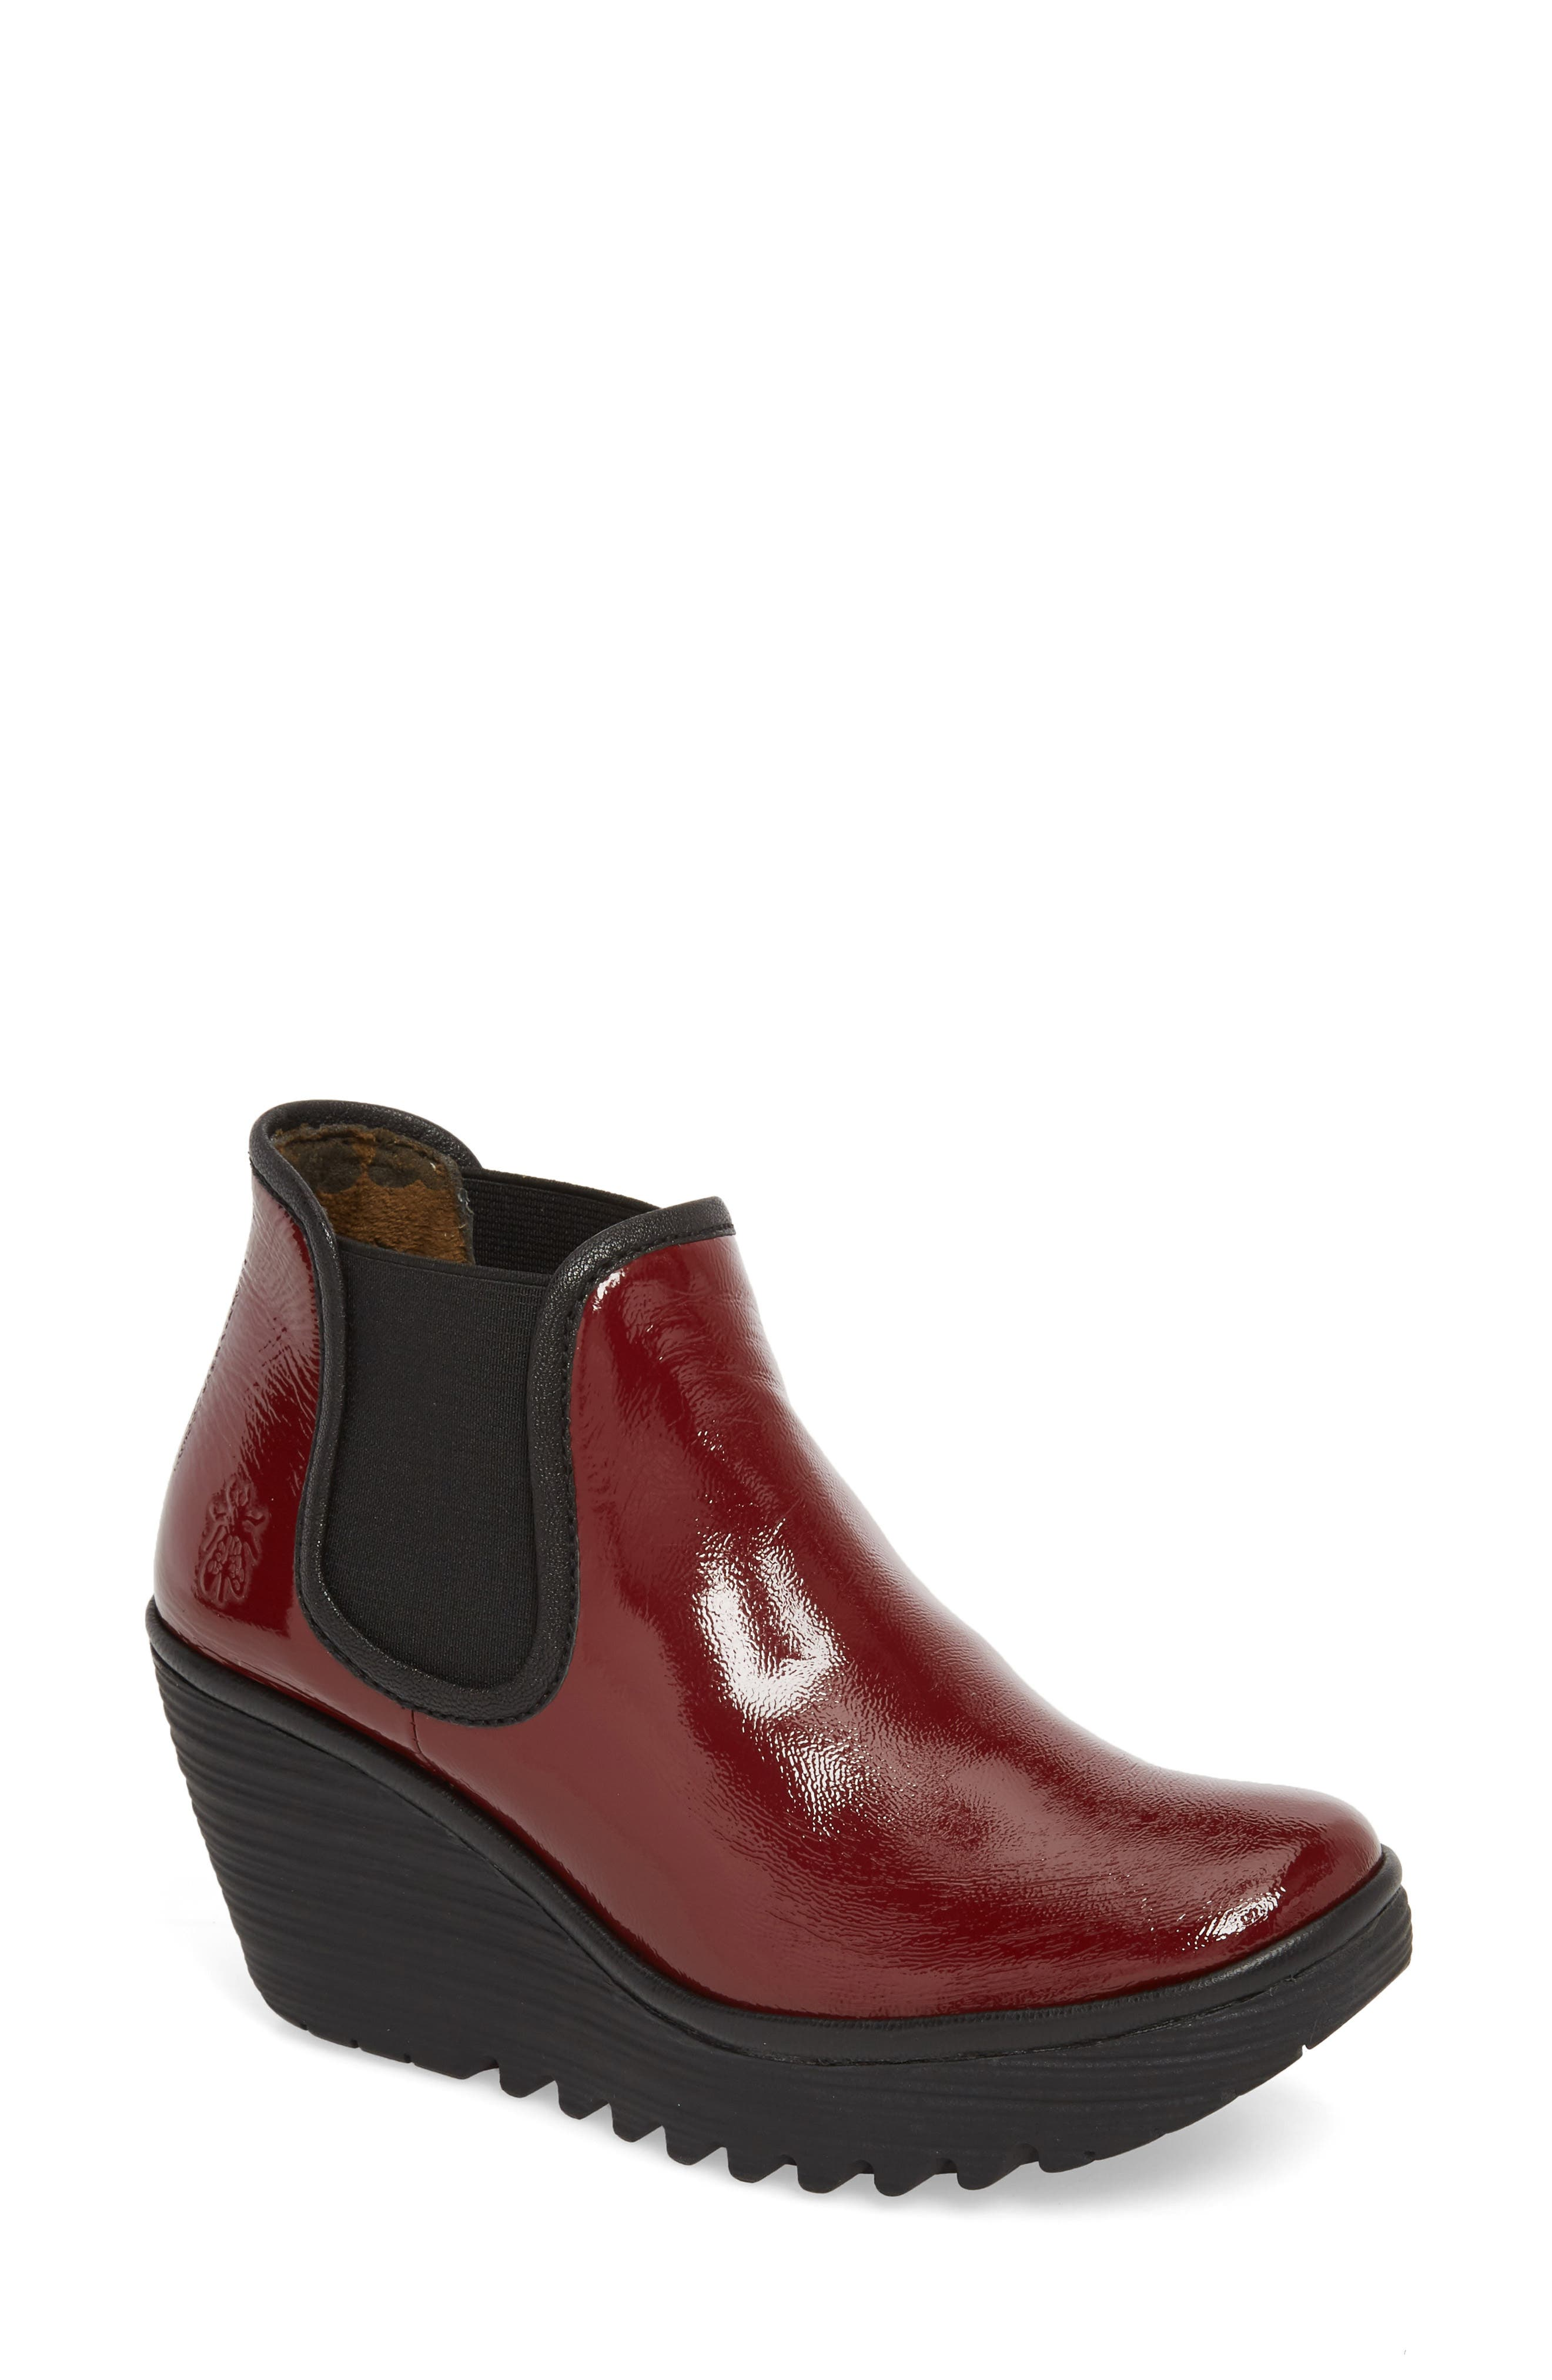 'Yat' Wedge Bootie,                         Main,                         color, CORDOBA RED/ BLACK/ MOUSSE